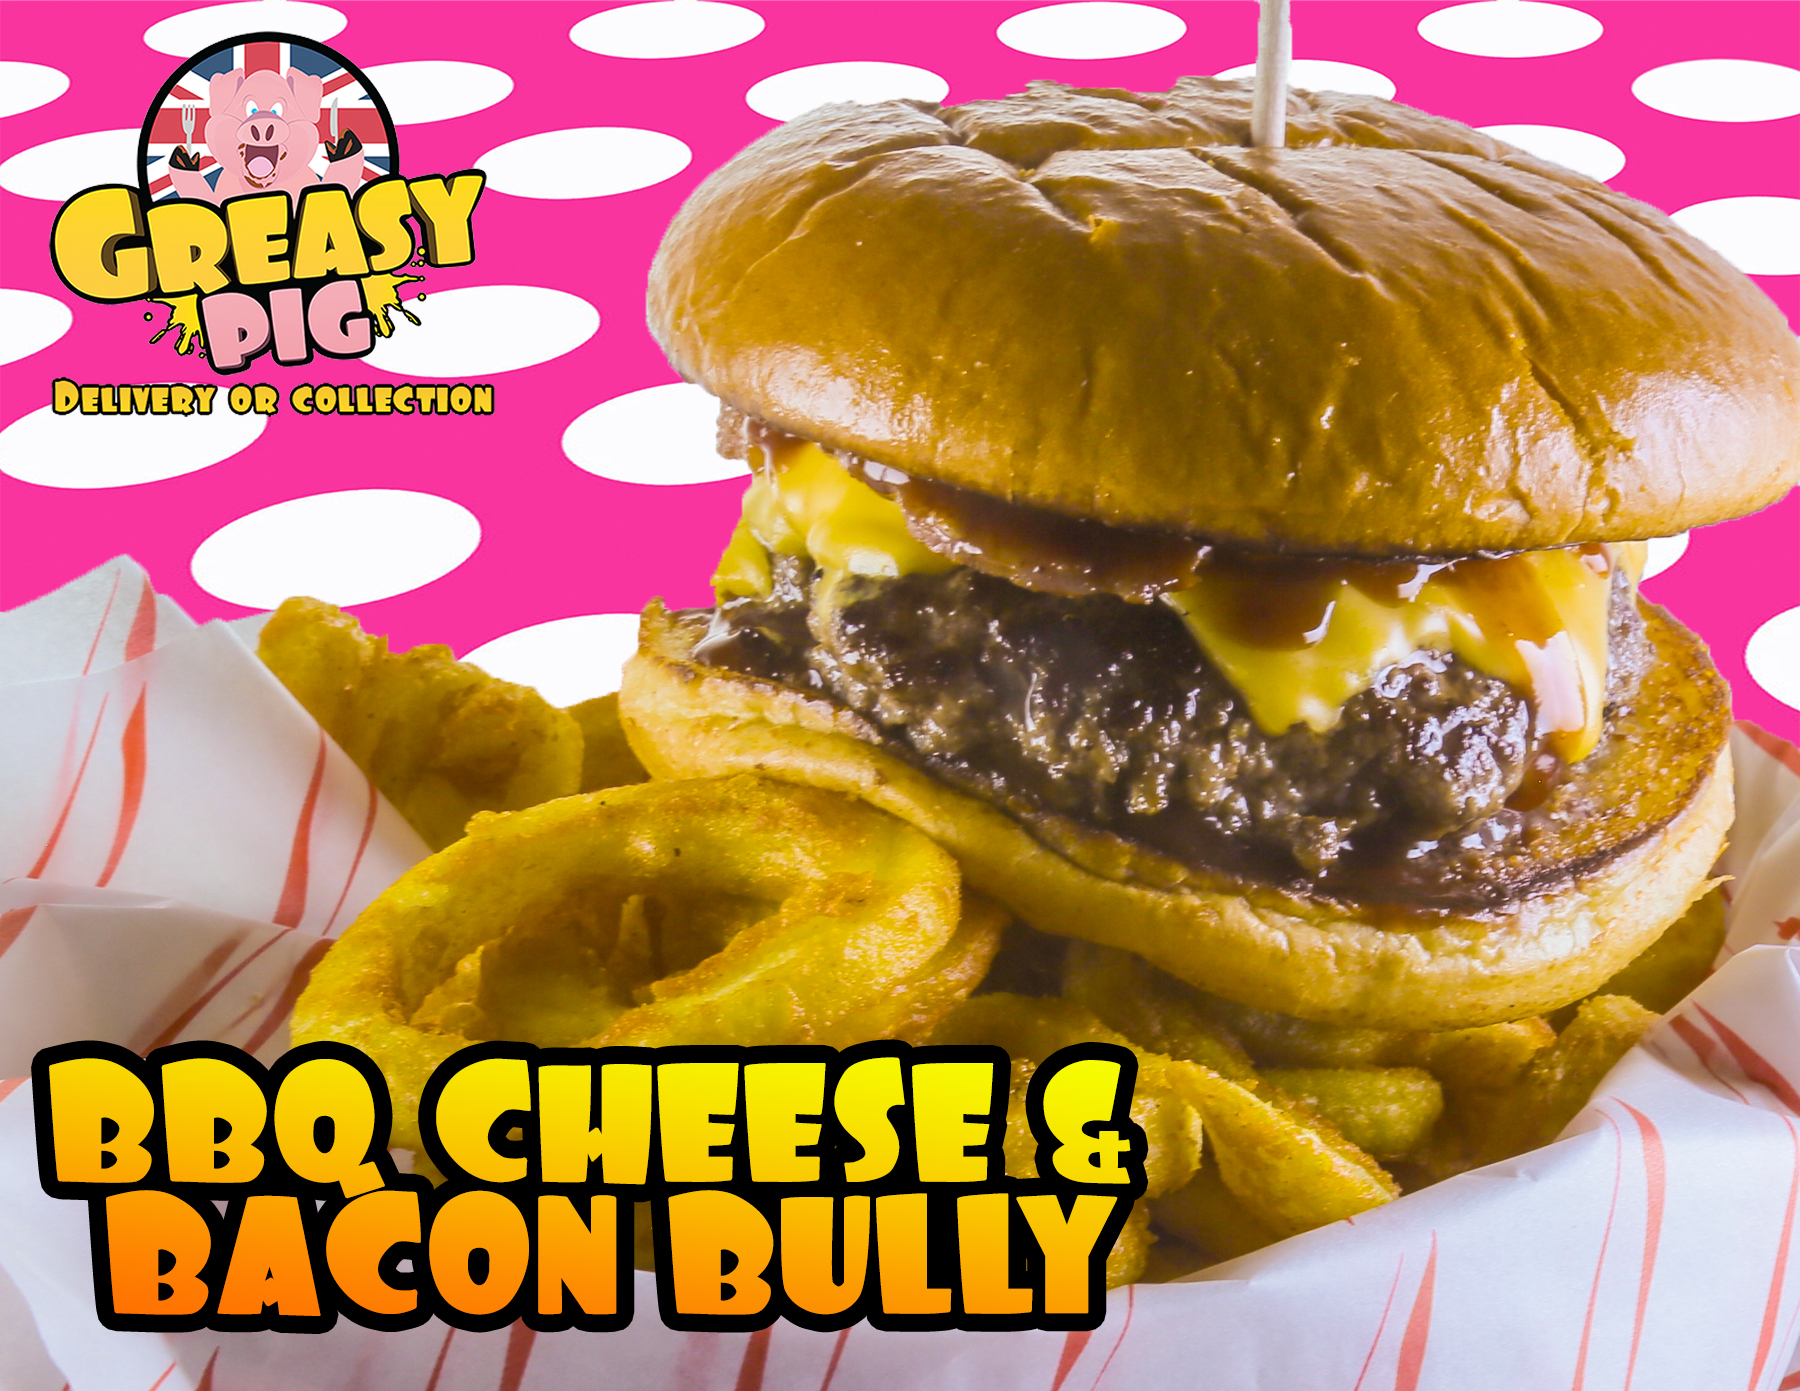 bbq cheese bacon bully